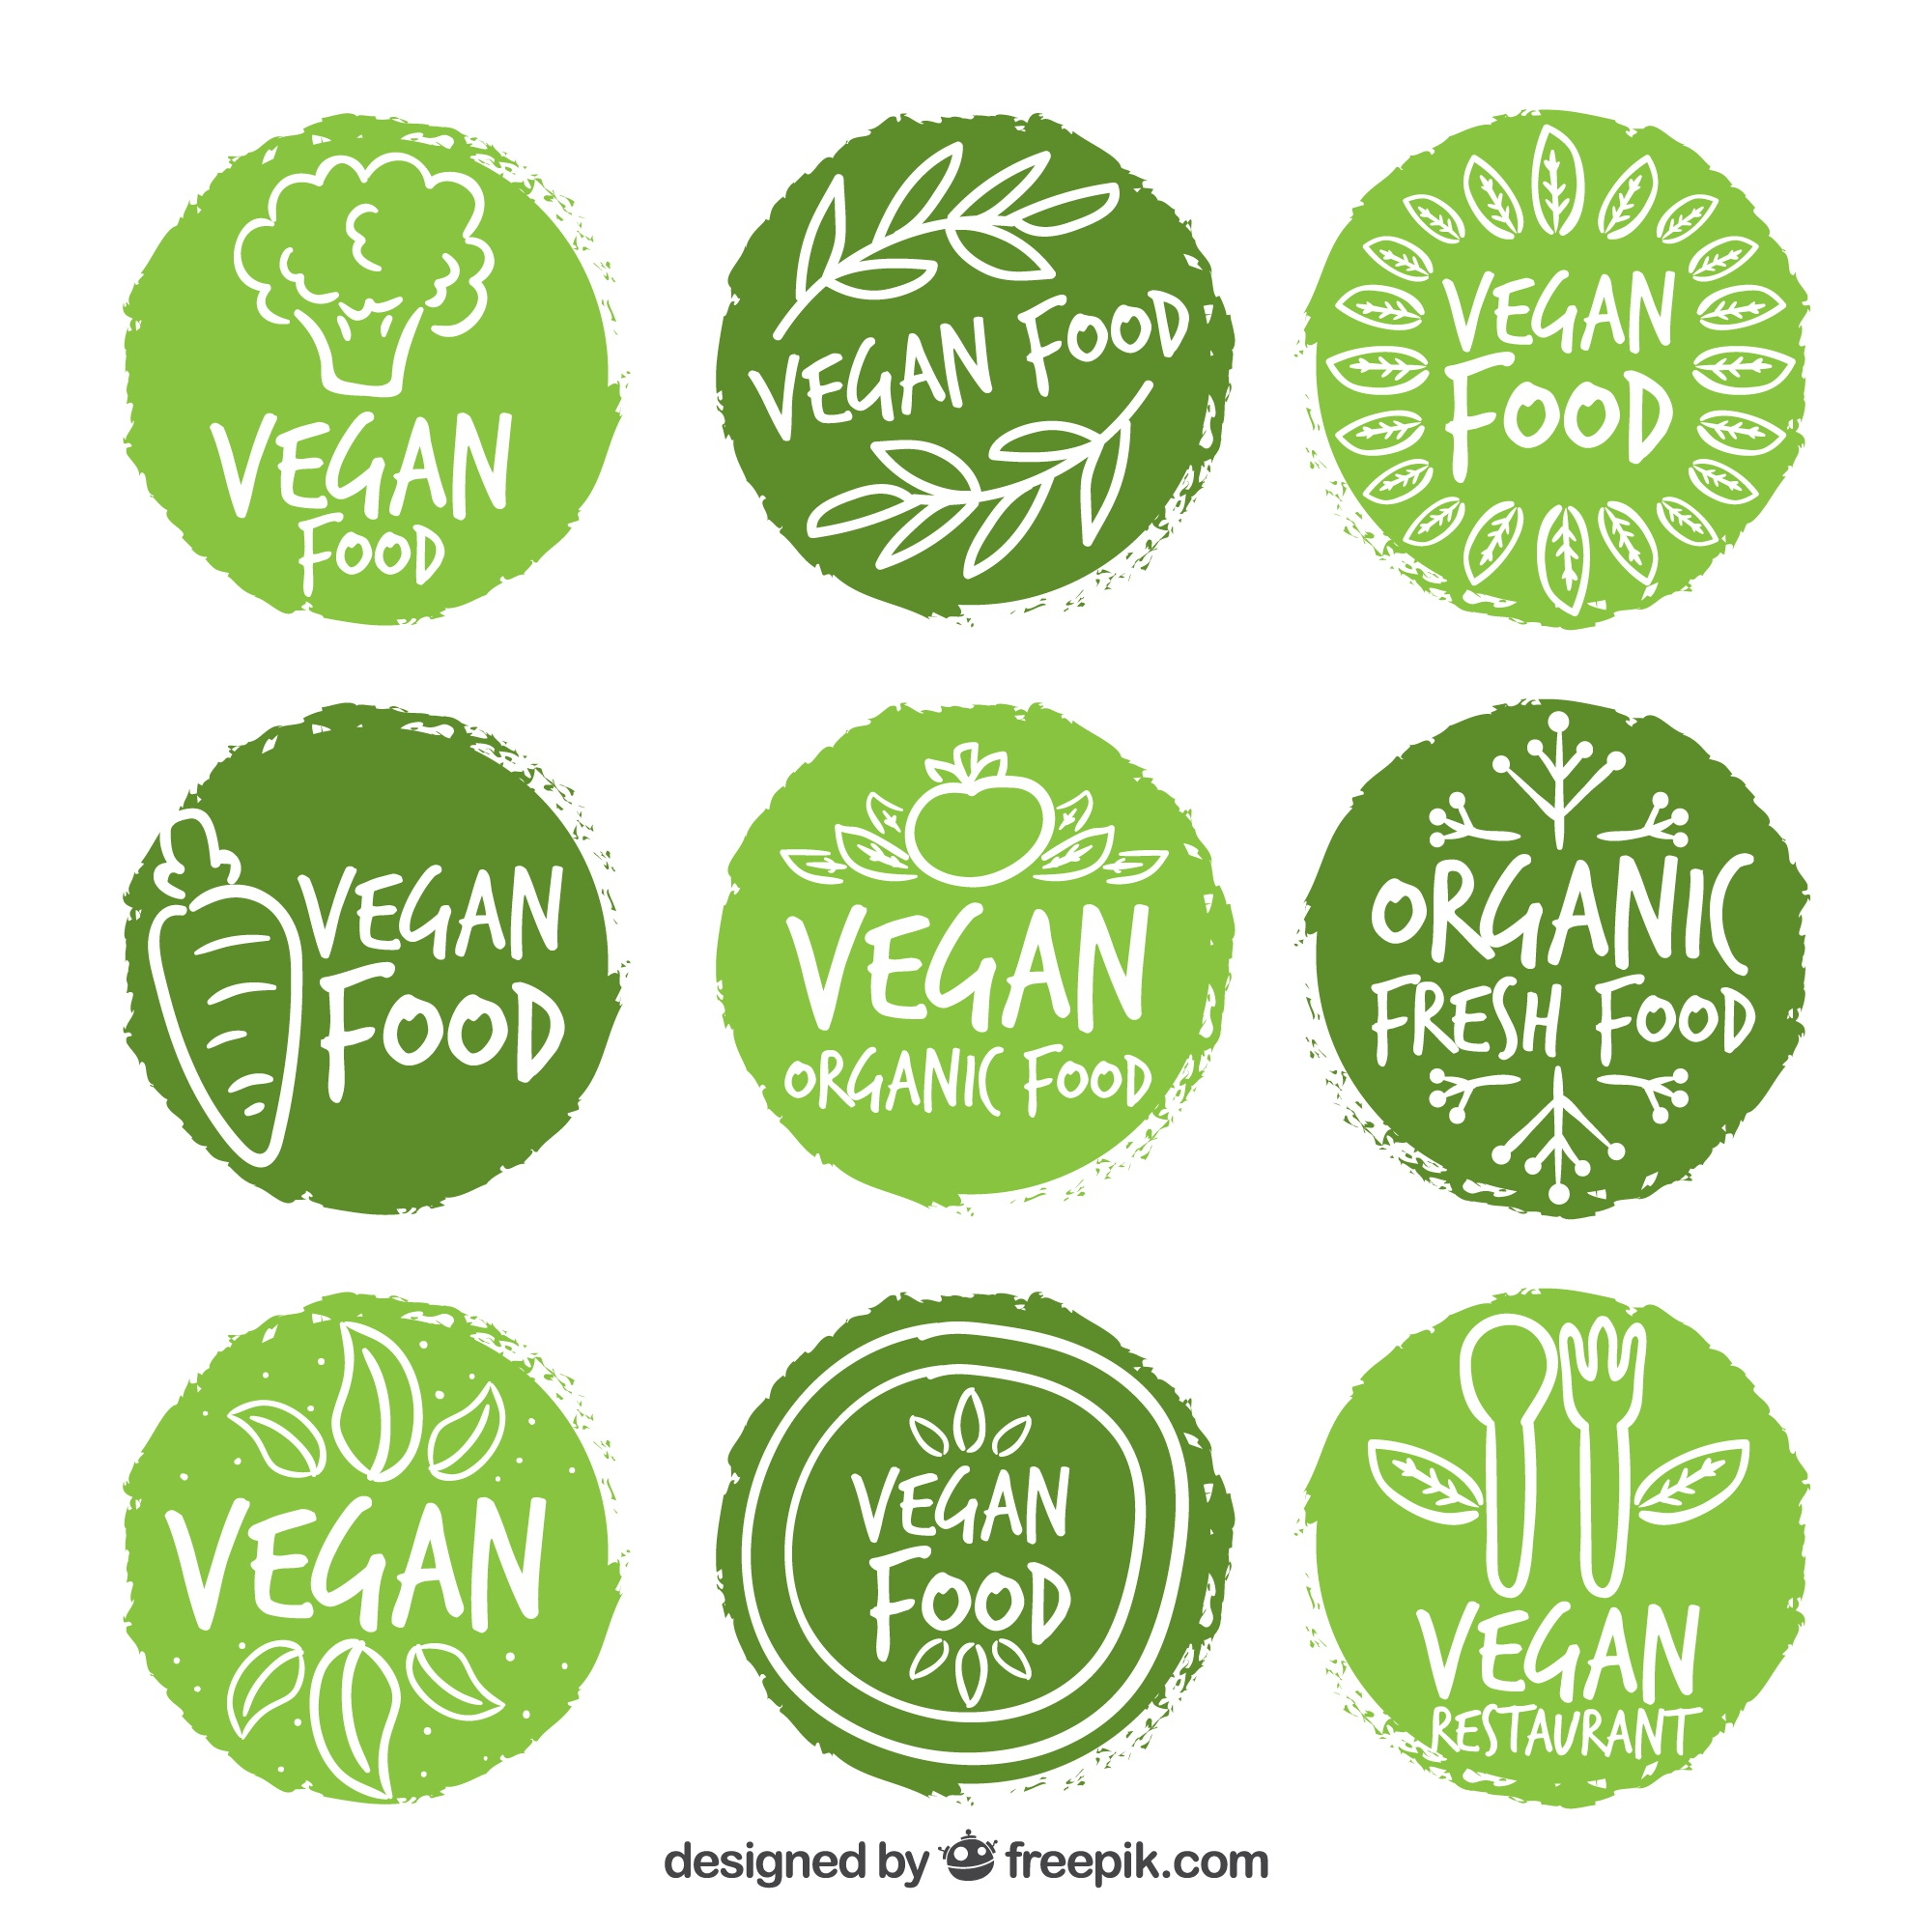 Hand painted rounded vegan food labels